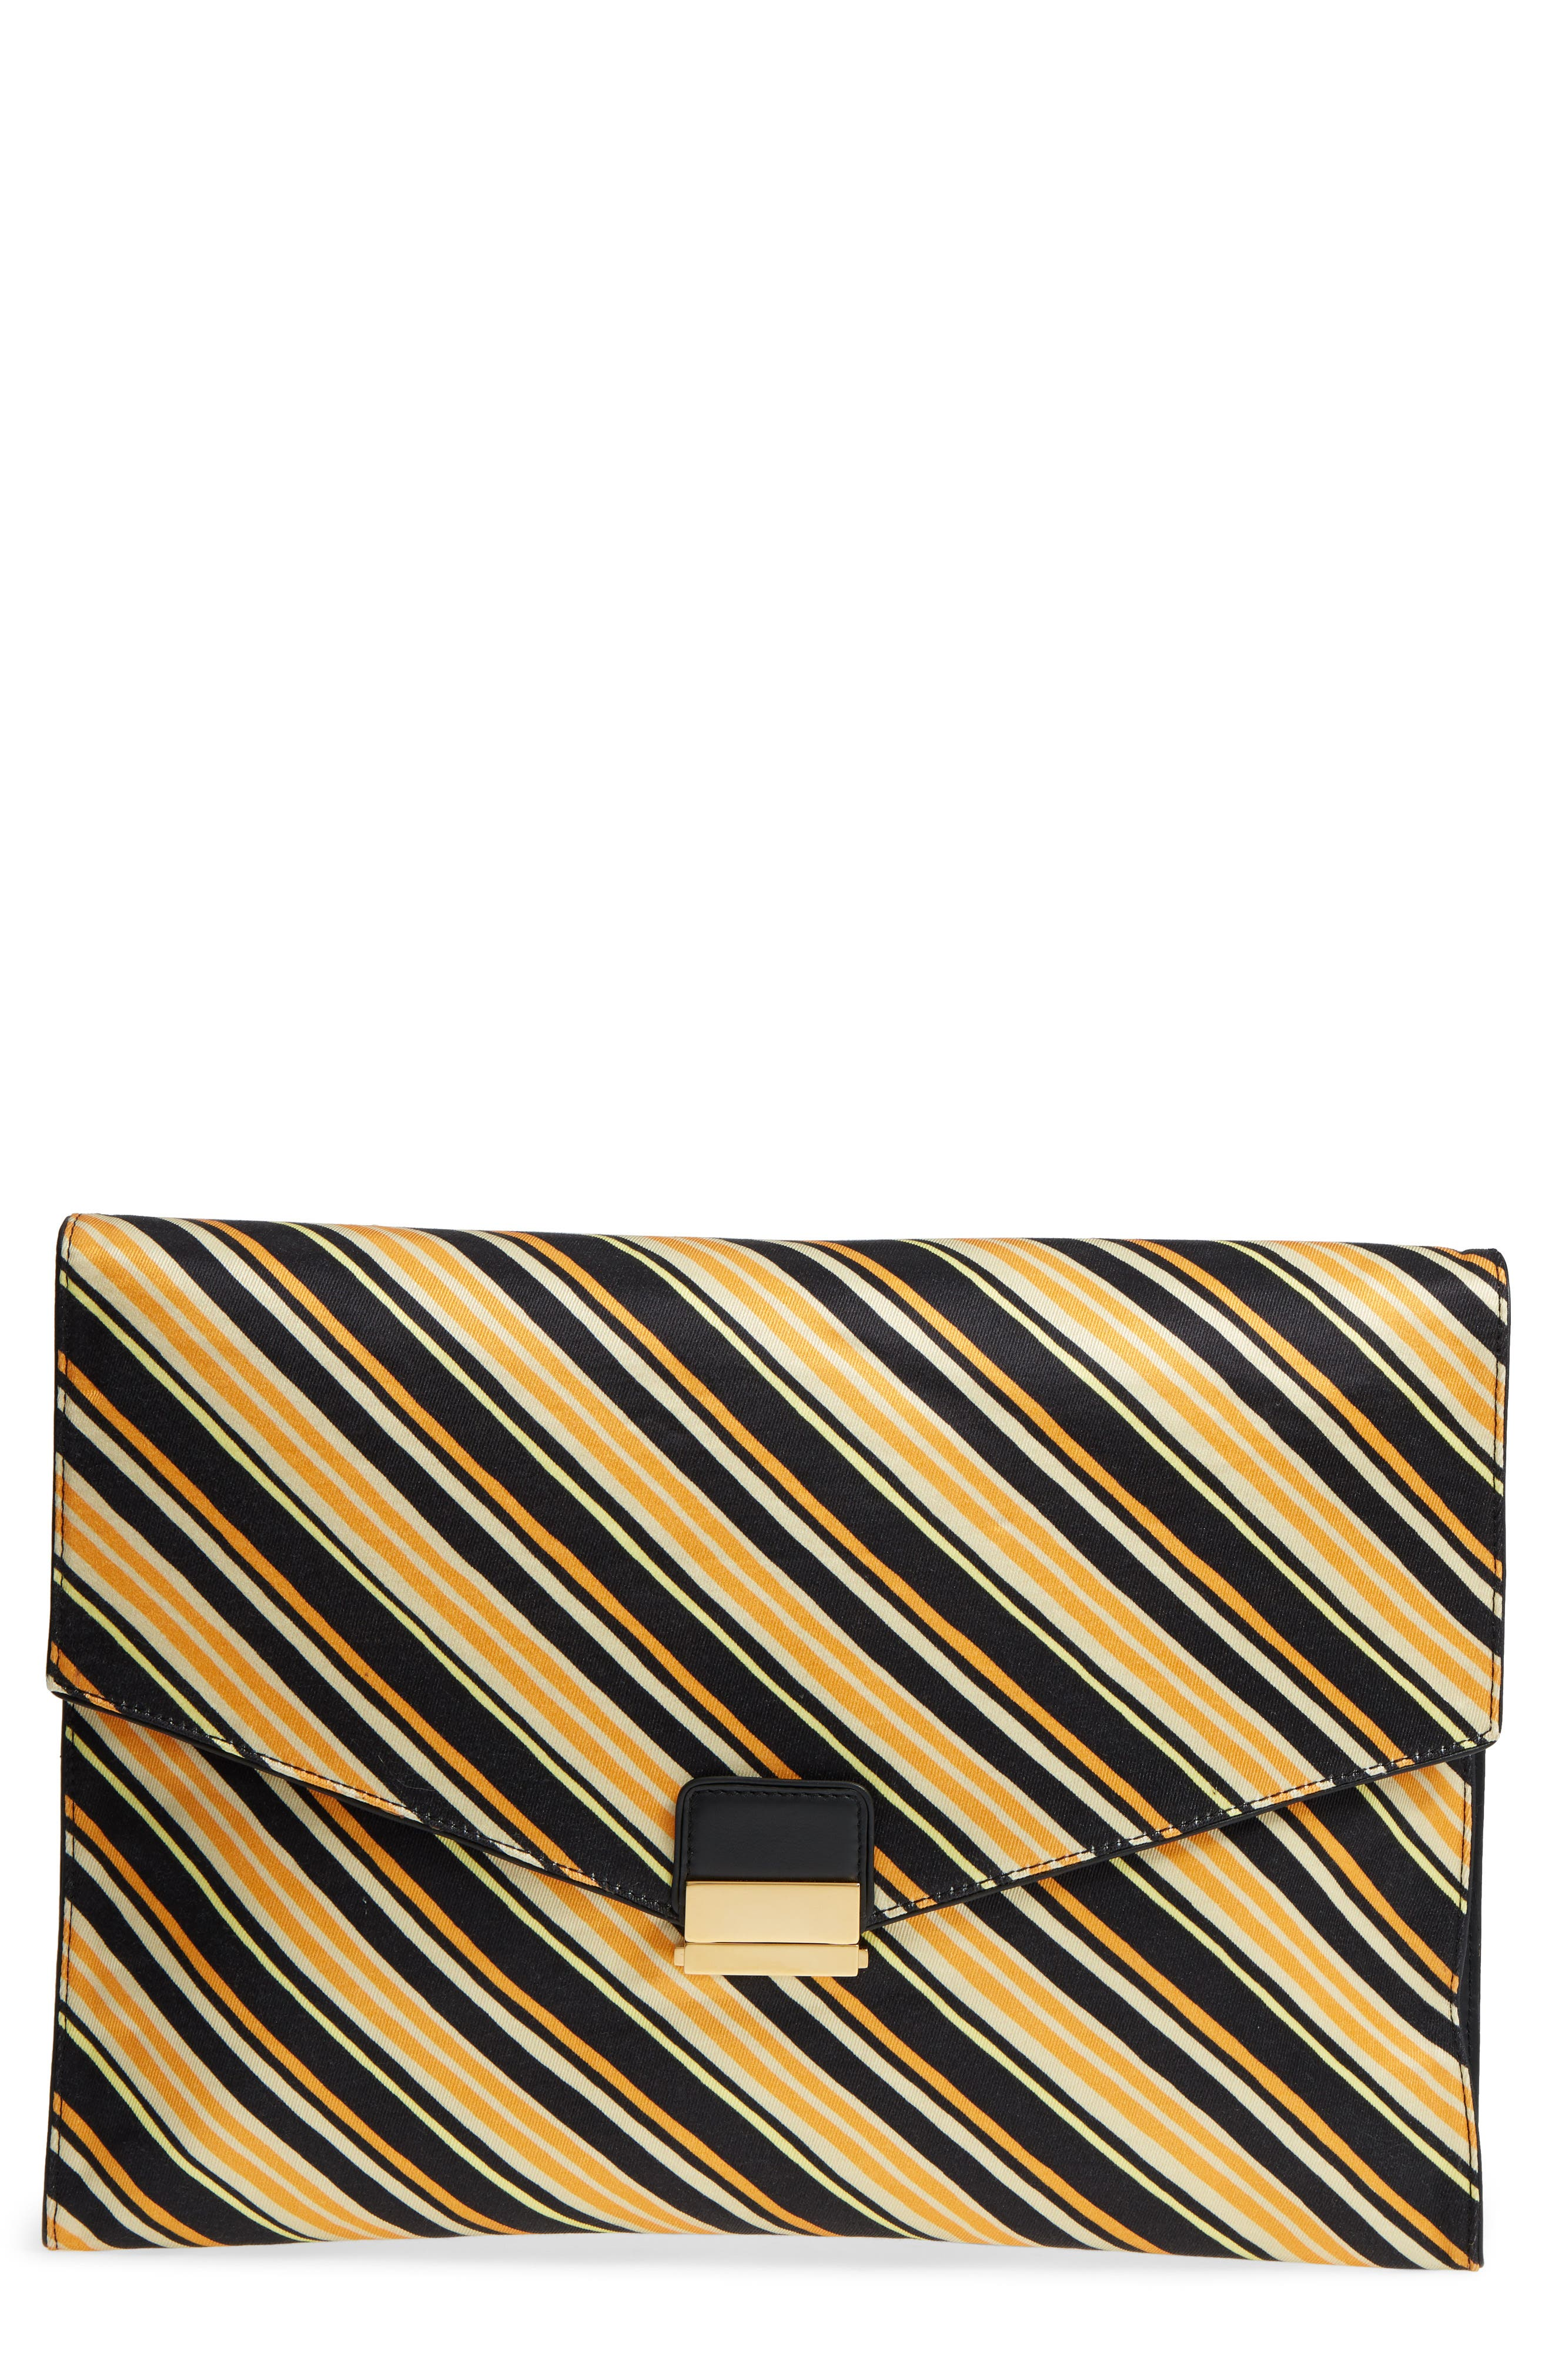 DRIES VAN NOTEN, Stripe Canvas Large Canvas Envelope Clutch, Main thumbnail 1, color, 001